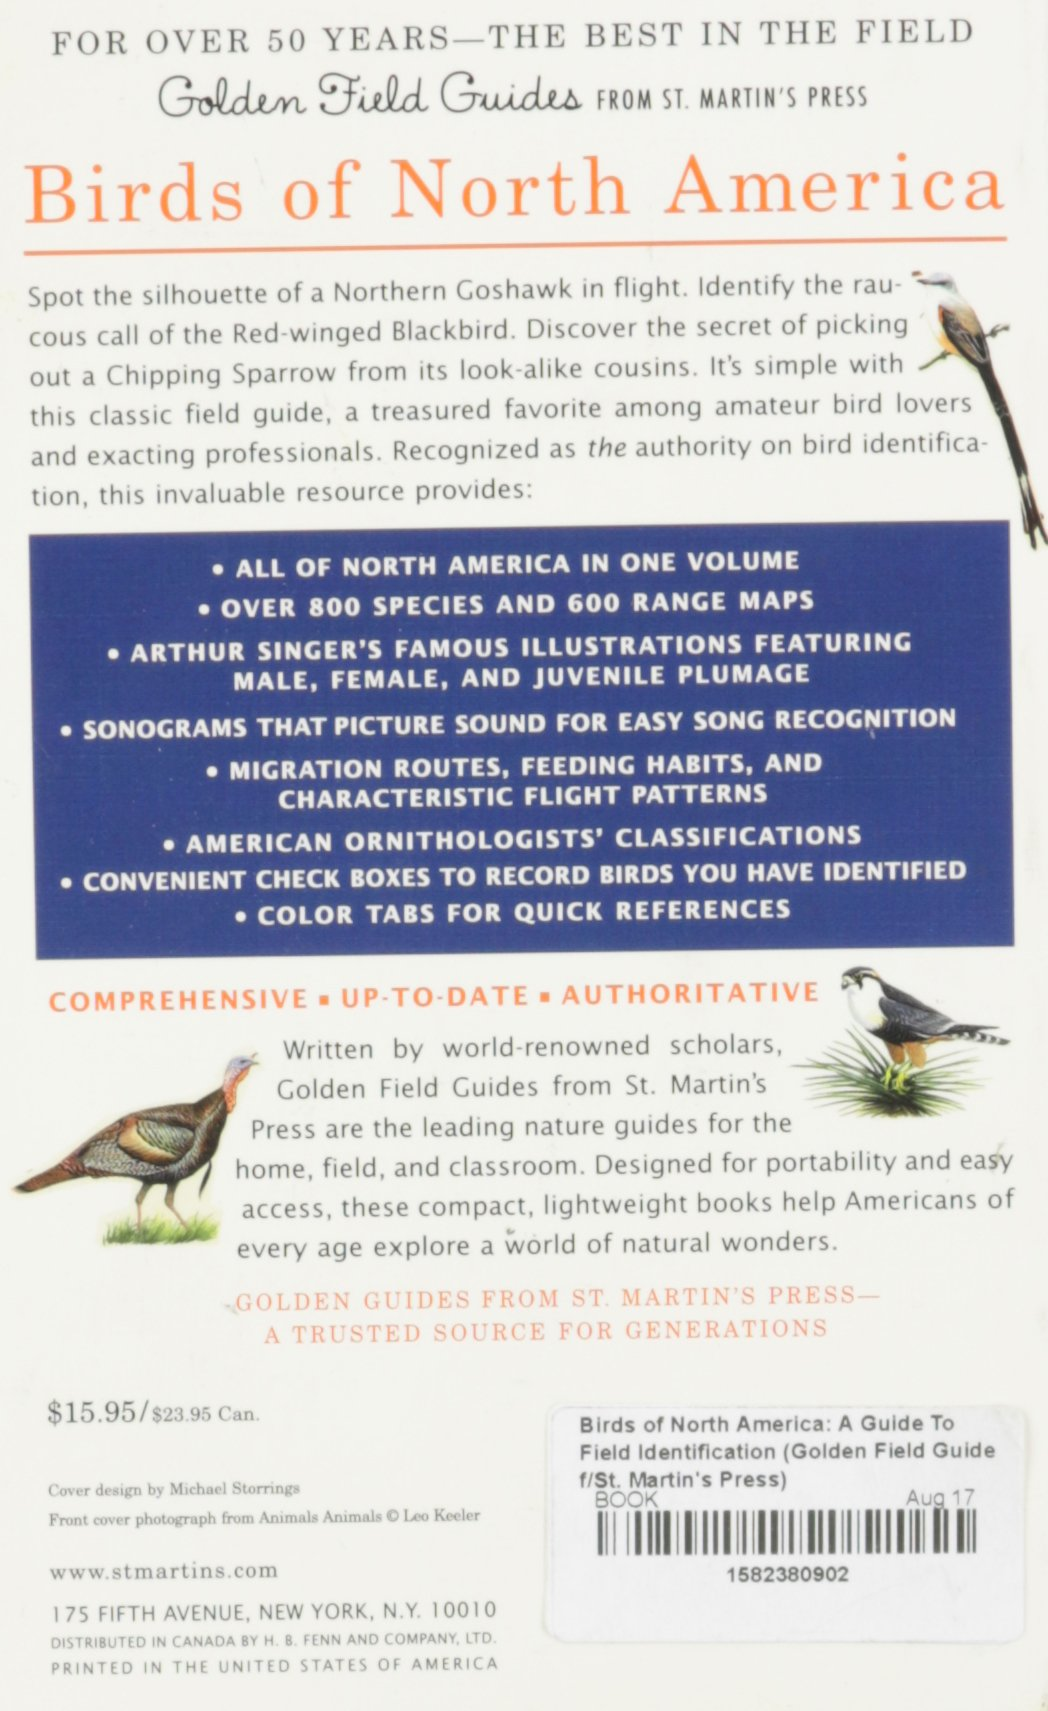 birds of north america a guide to field identification golden